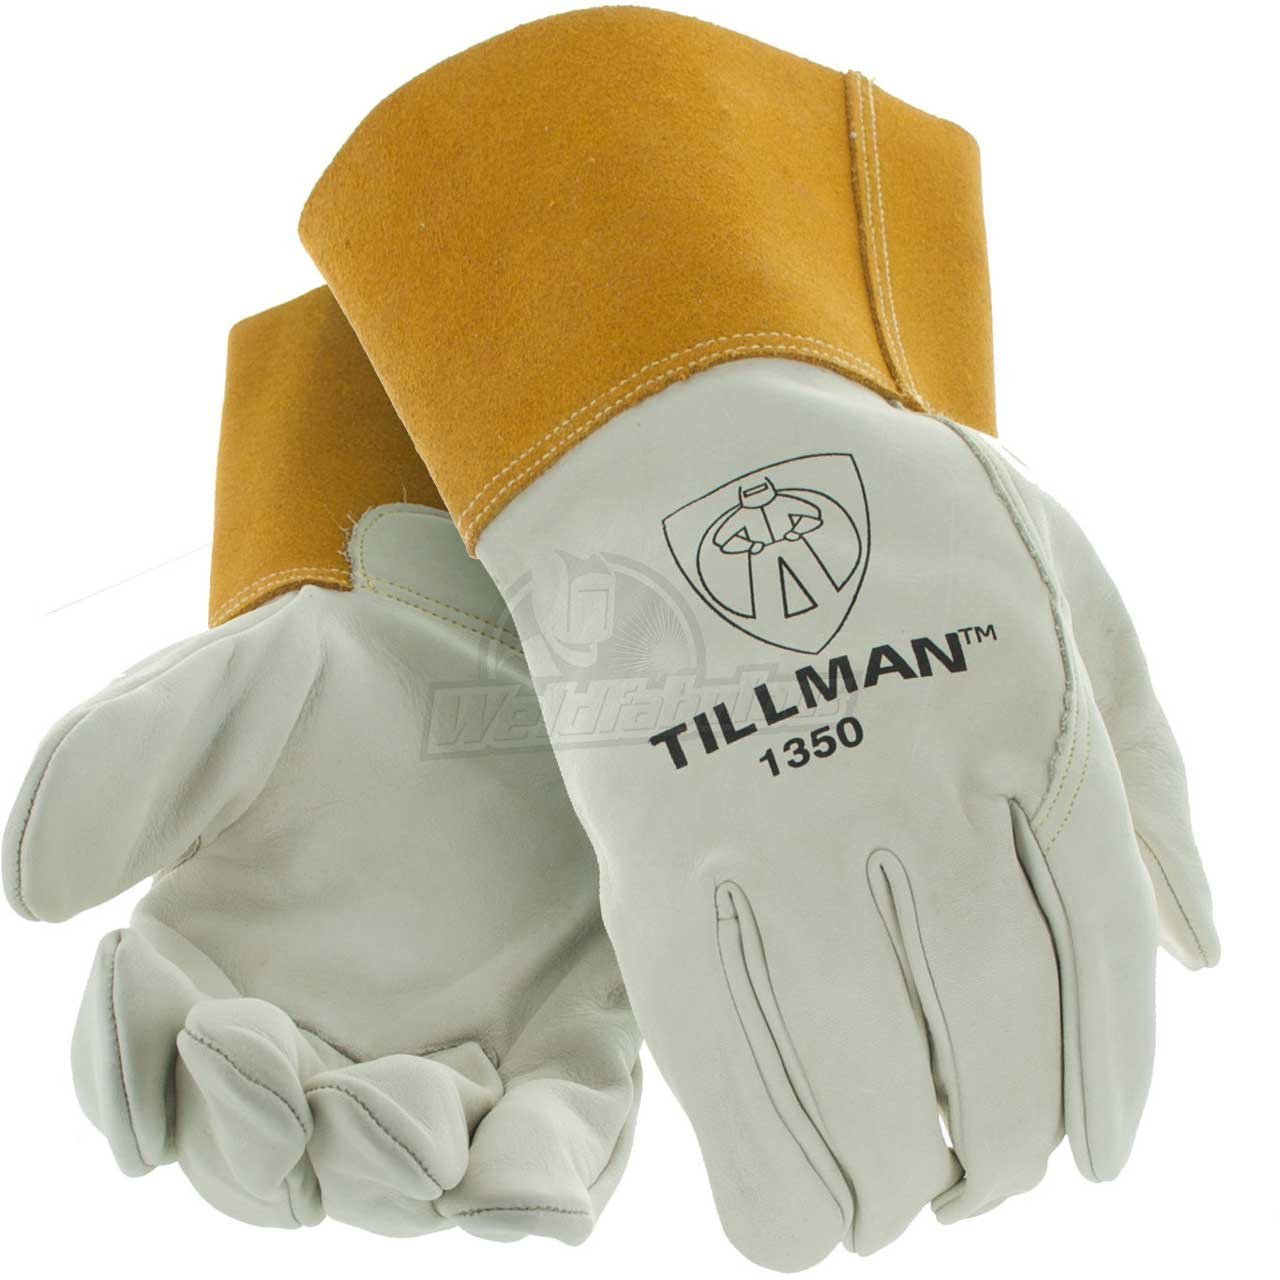 """Cowhide MIG welding gloves Large, Heavy duty top grain cowhide MIG welding gloves. Unlined, with 4"""" cuff for added protection. By Tillman"""